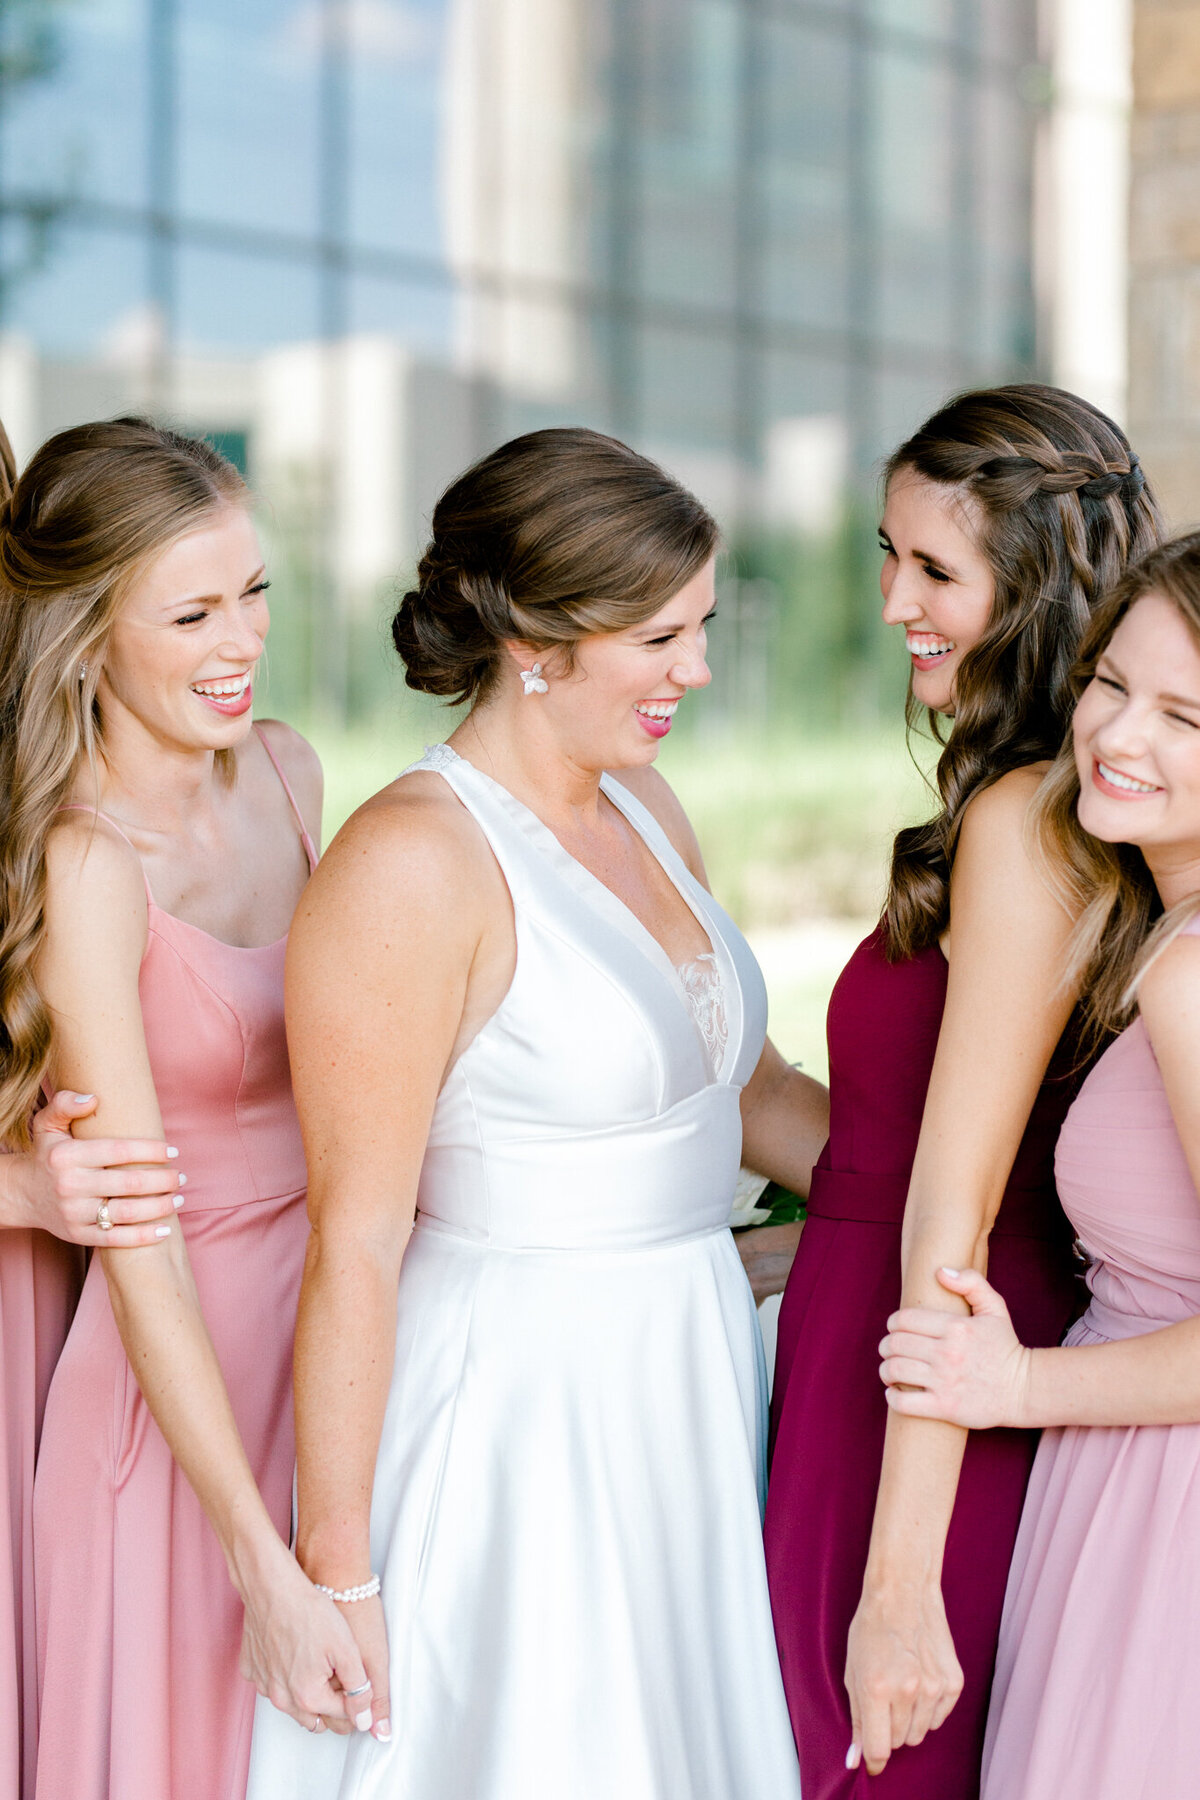 Kaylee & Michael's Wedding at Watermark Community Church | Dallas Wedding Photographer | Sami Kathryn Photography-77